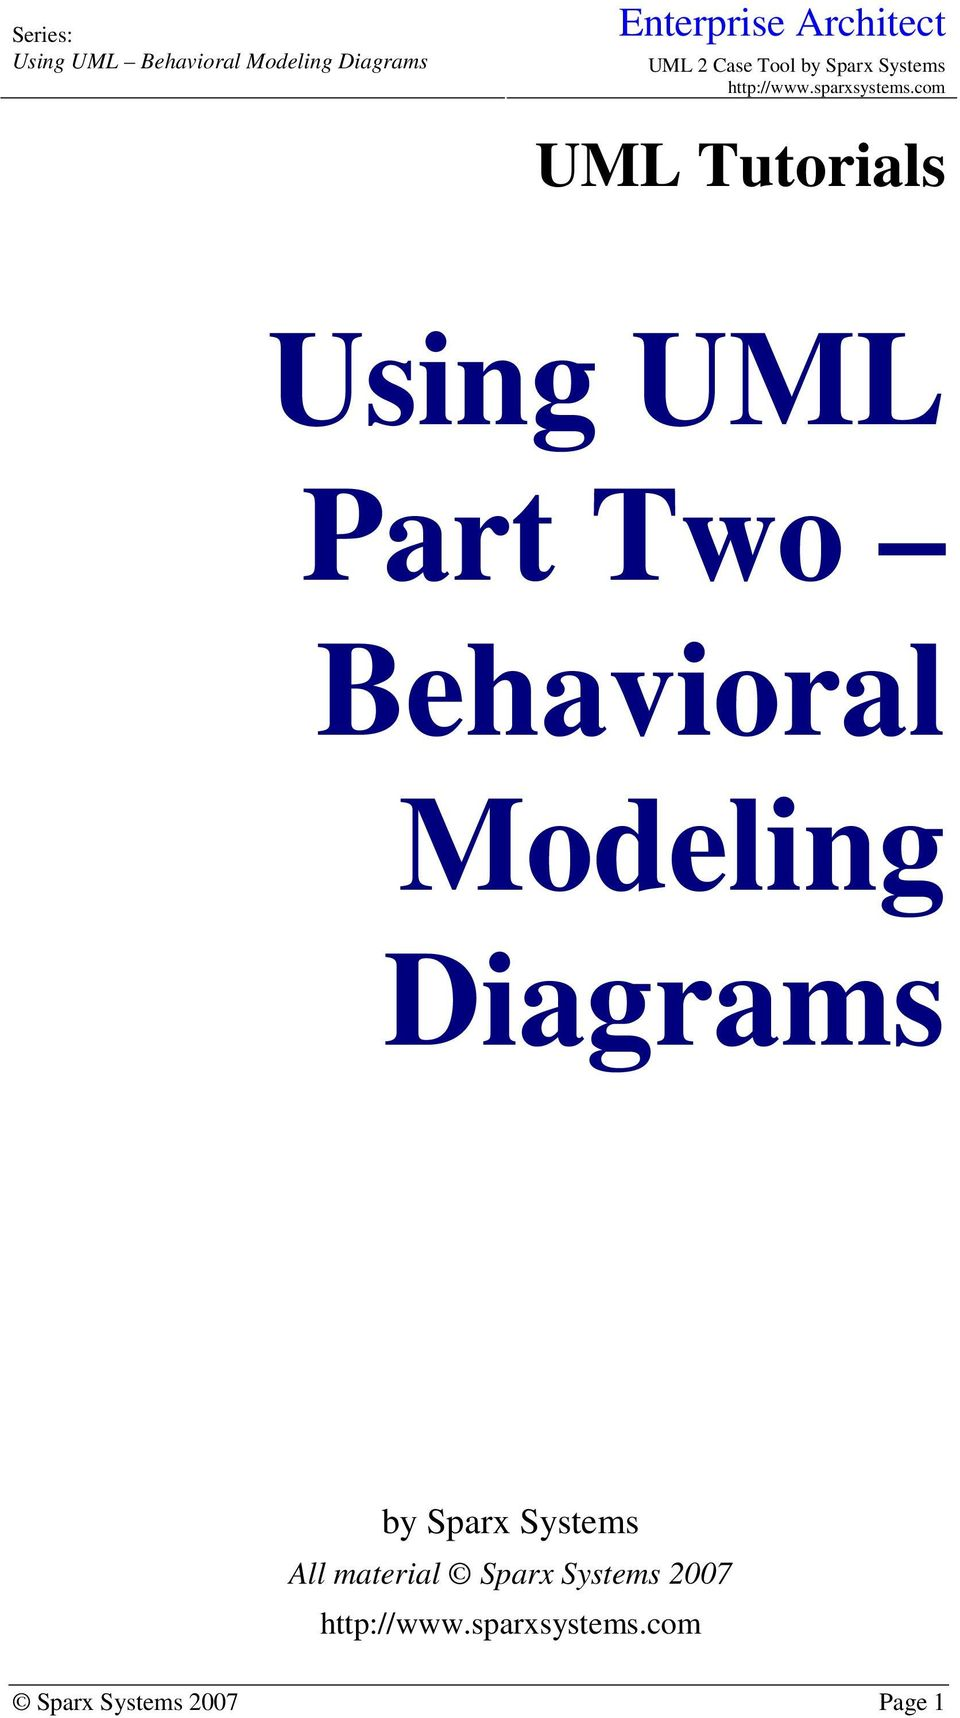 Using Uml Part Two Behavioral Modeling Diagrams Pdf Application Life Cycle Protocol State Machine Diagram Example Sparx Systems All Material